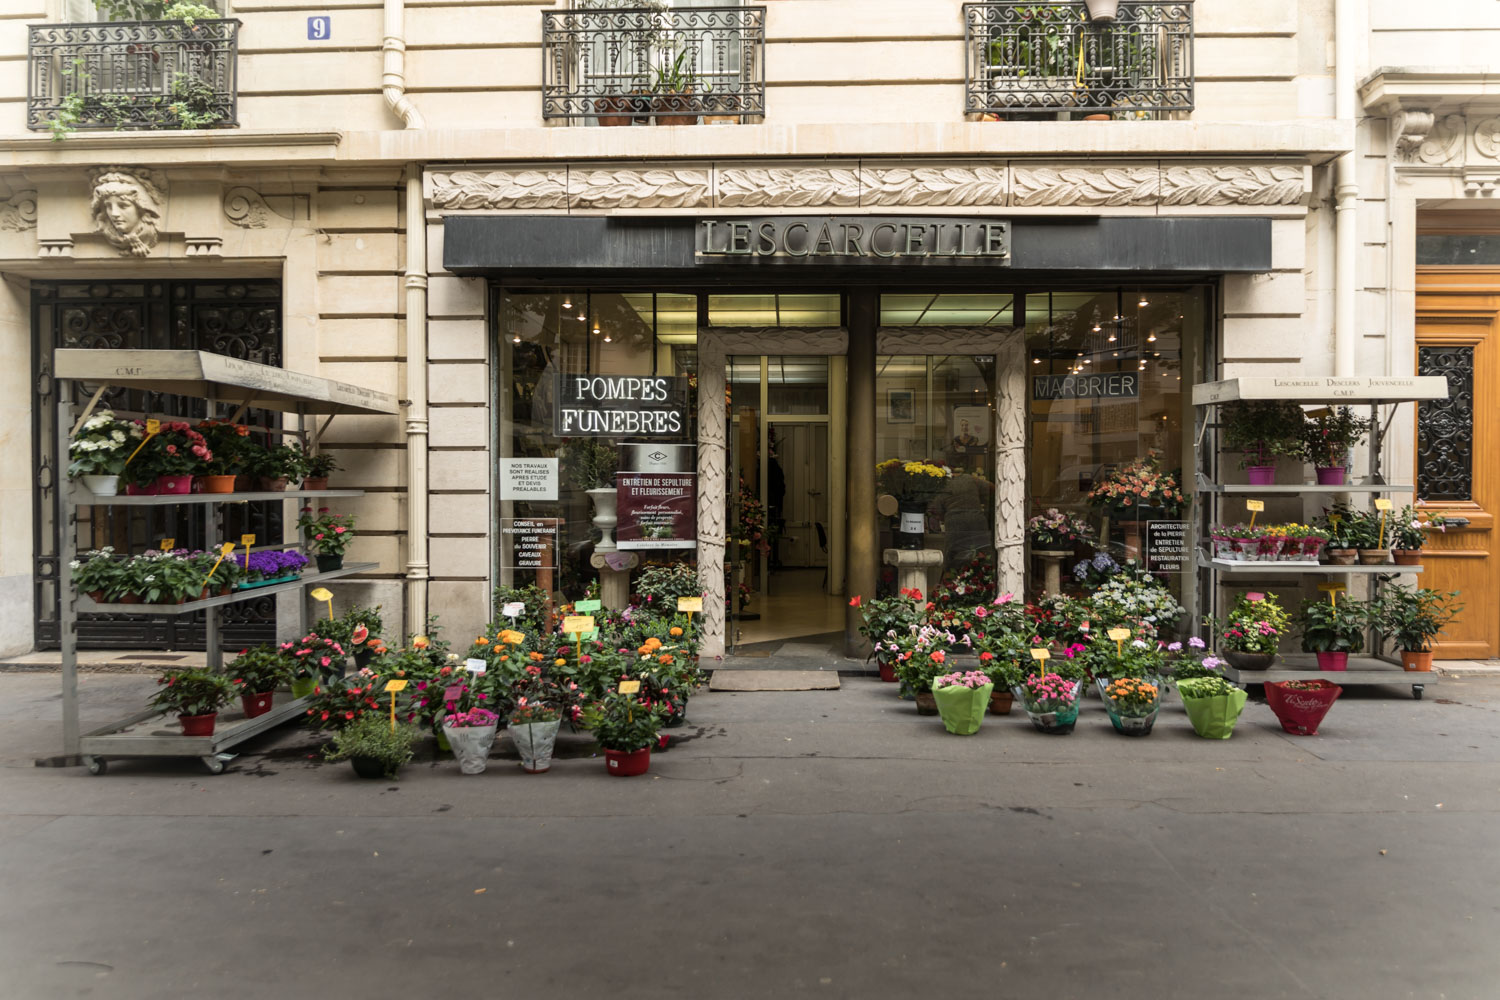 photo agence lescarcelle paris 18 montmartre